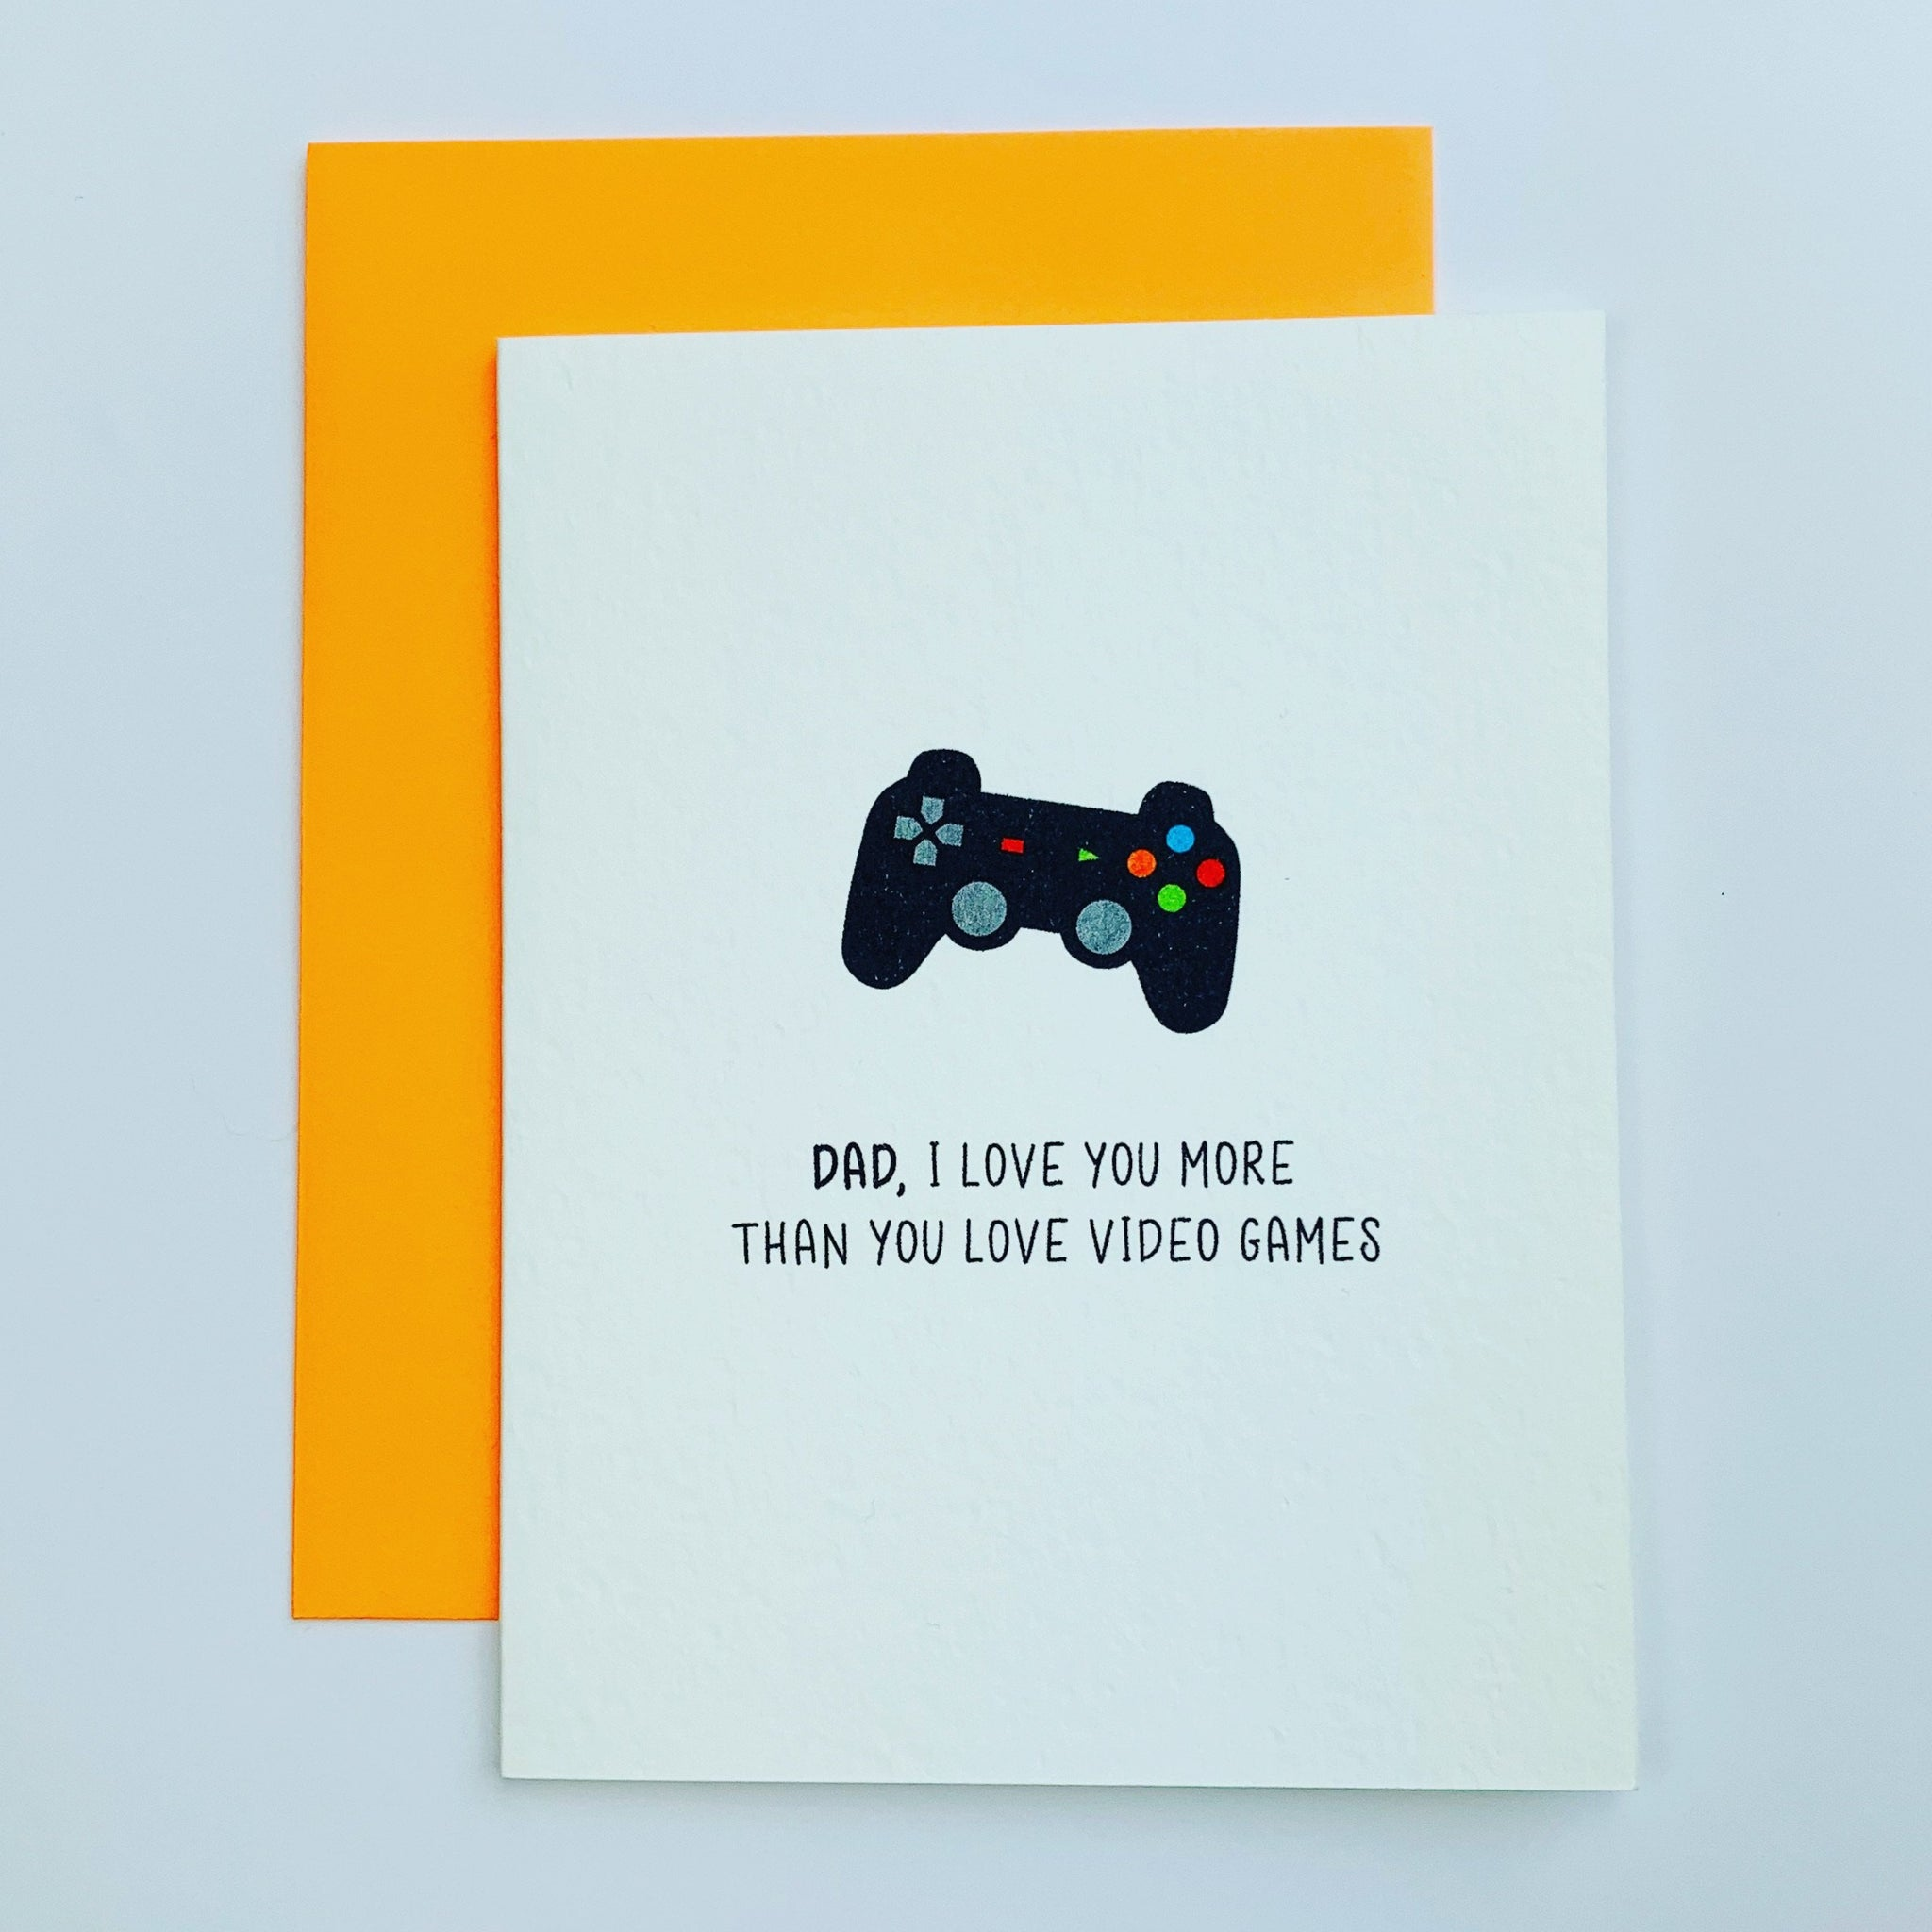 Dad, I love you more than you love video games by Driven To Ink